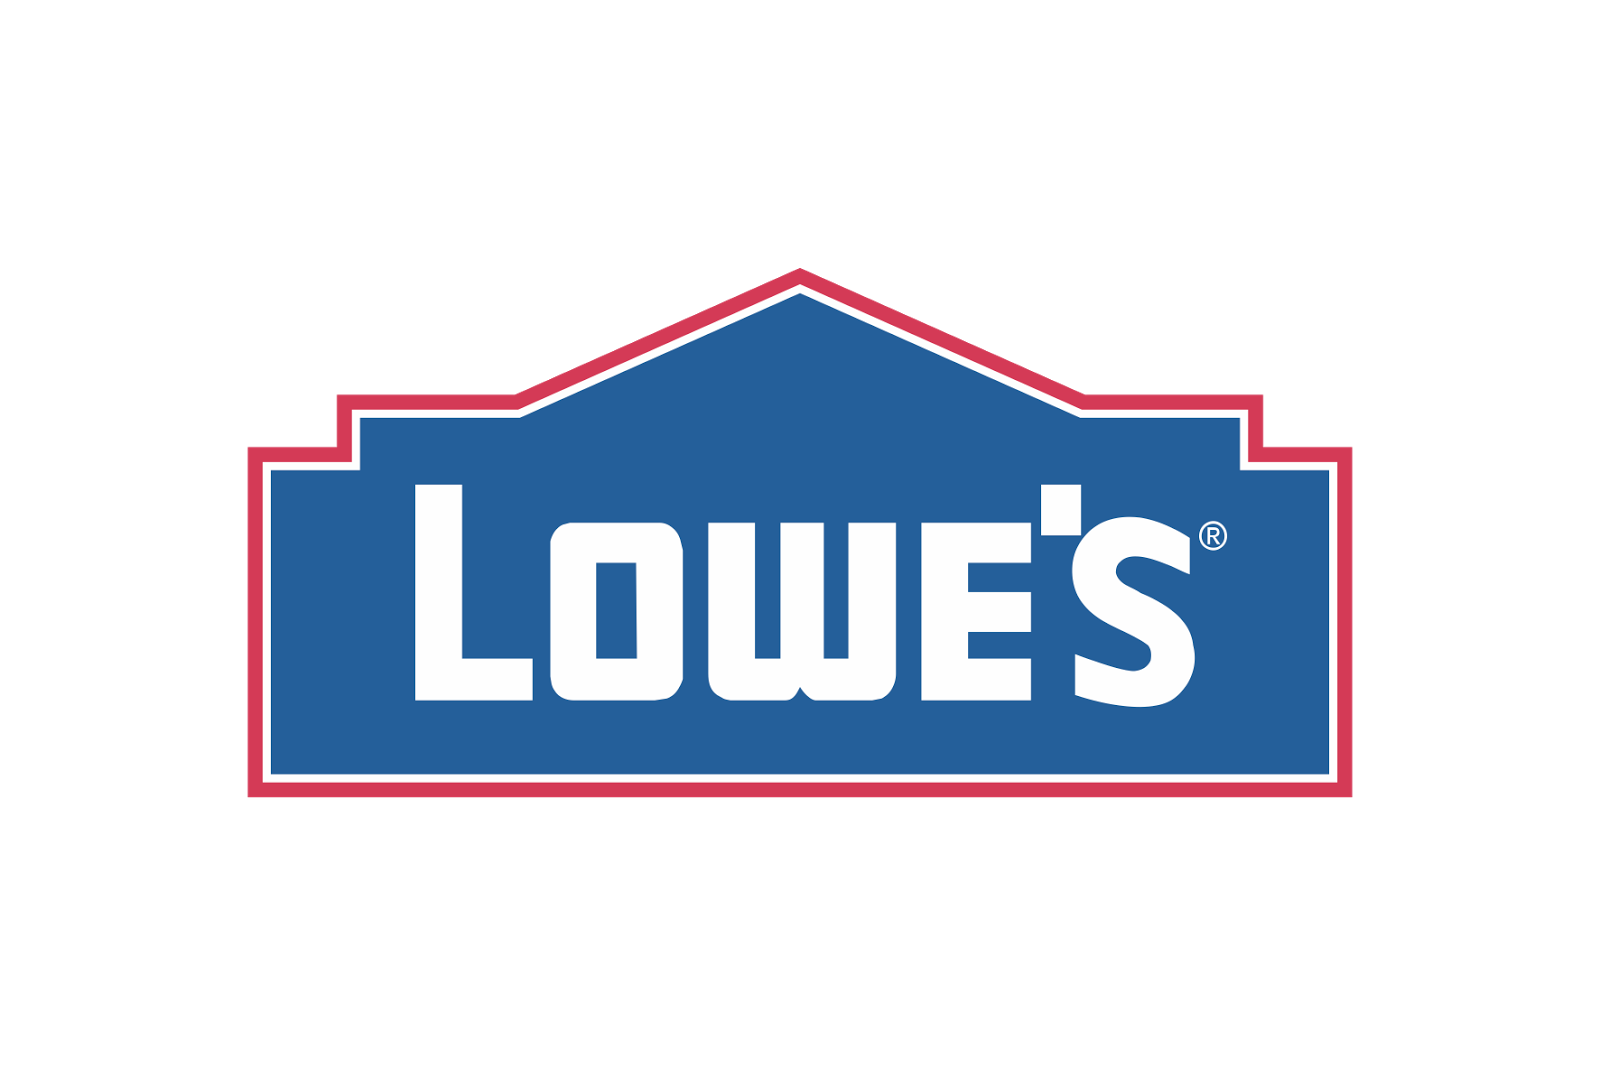 Nov 11,  · Find a Lowe's store near you and start shopping for appliances, tools, paint, home décor, flooring and more.